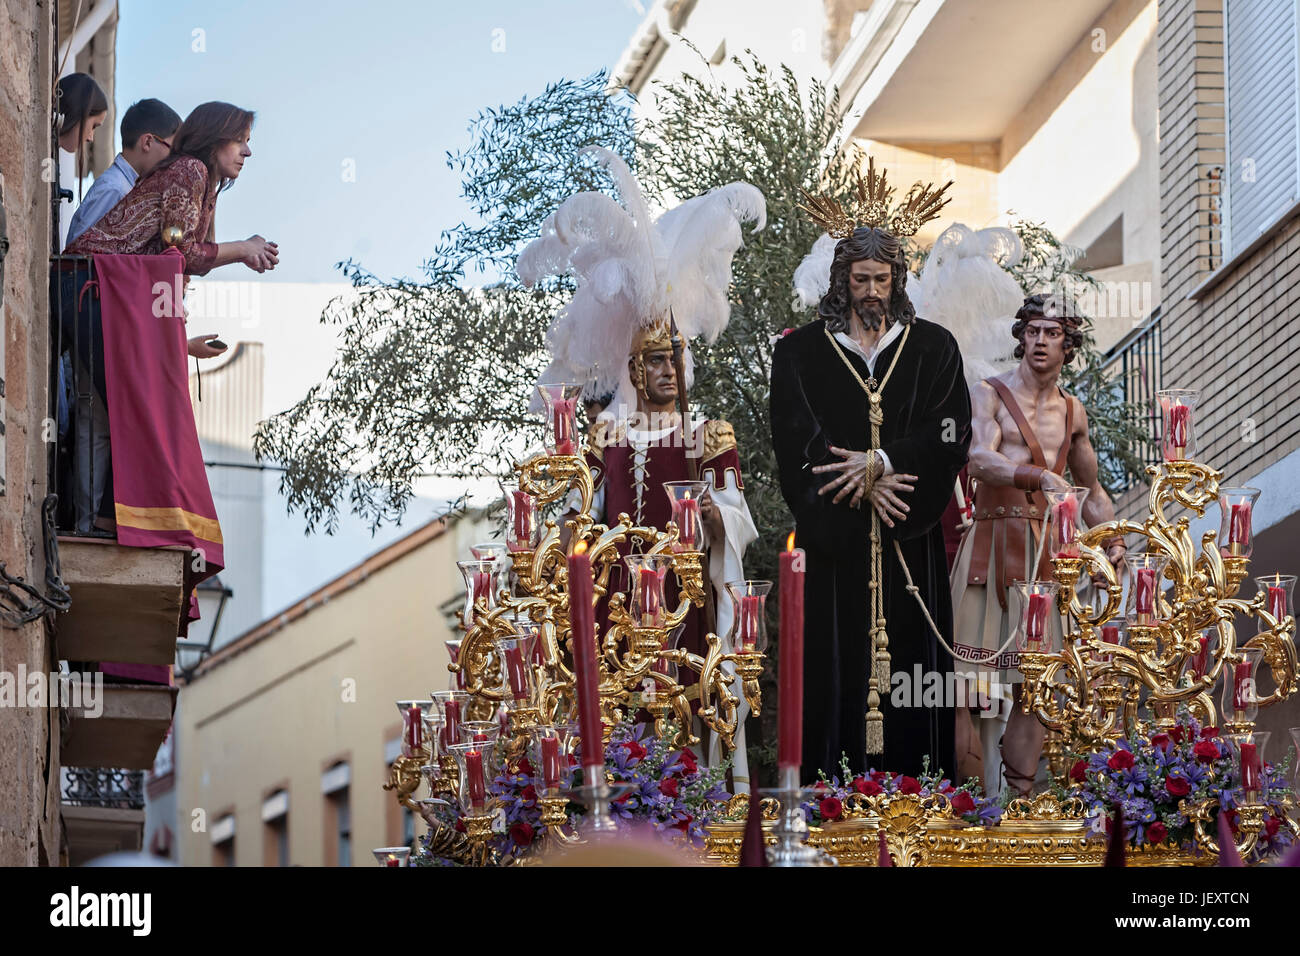 Linares, jaen province, SPAIN - March 17, 2014: Brotherhood of Jesus corsage making station of penitence, Linares, - Stock Image